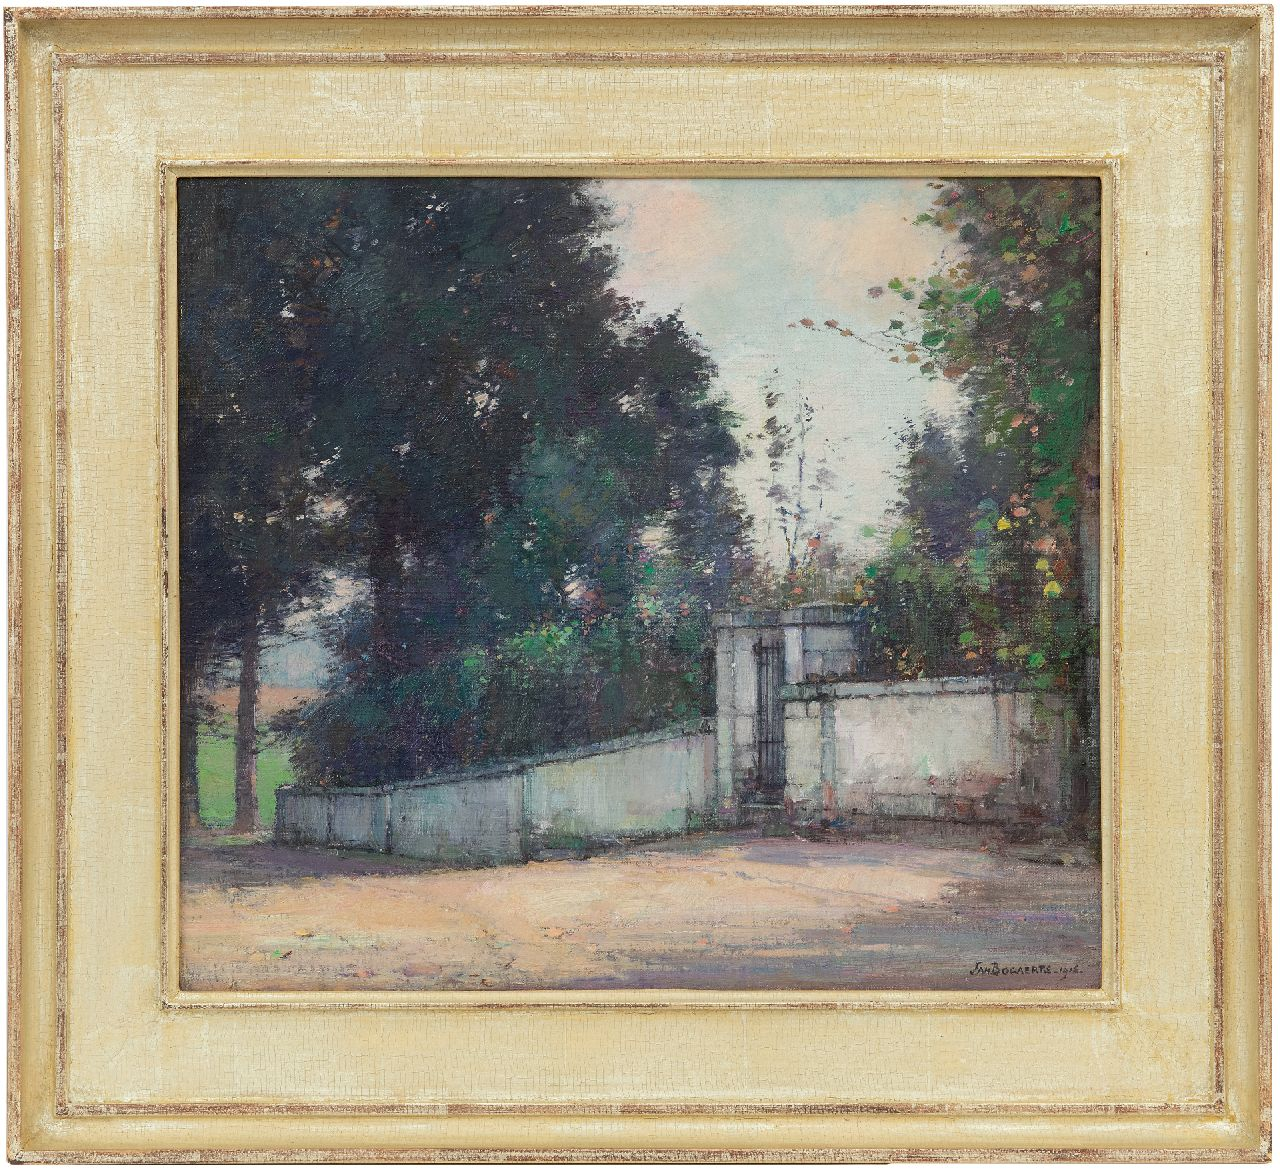 Bogaerts J.J.M.  | Johannes Jacobus Maria 'Jan' Bogaerts | Paintings offered for sale | Garden wall with a gate, oil on canvas 35.1 x 40.0 cm, signed l.r. and dated 1916